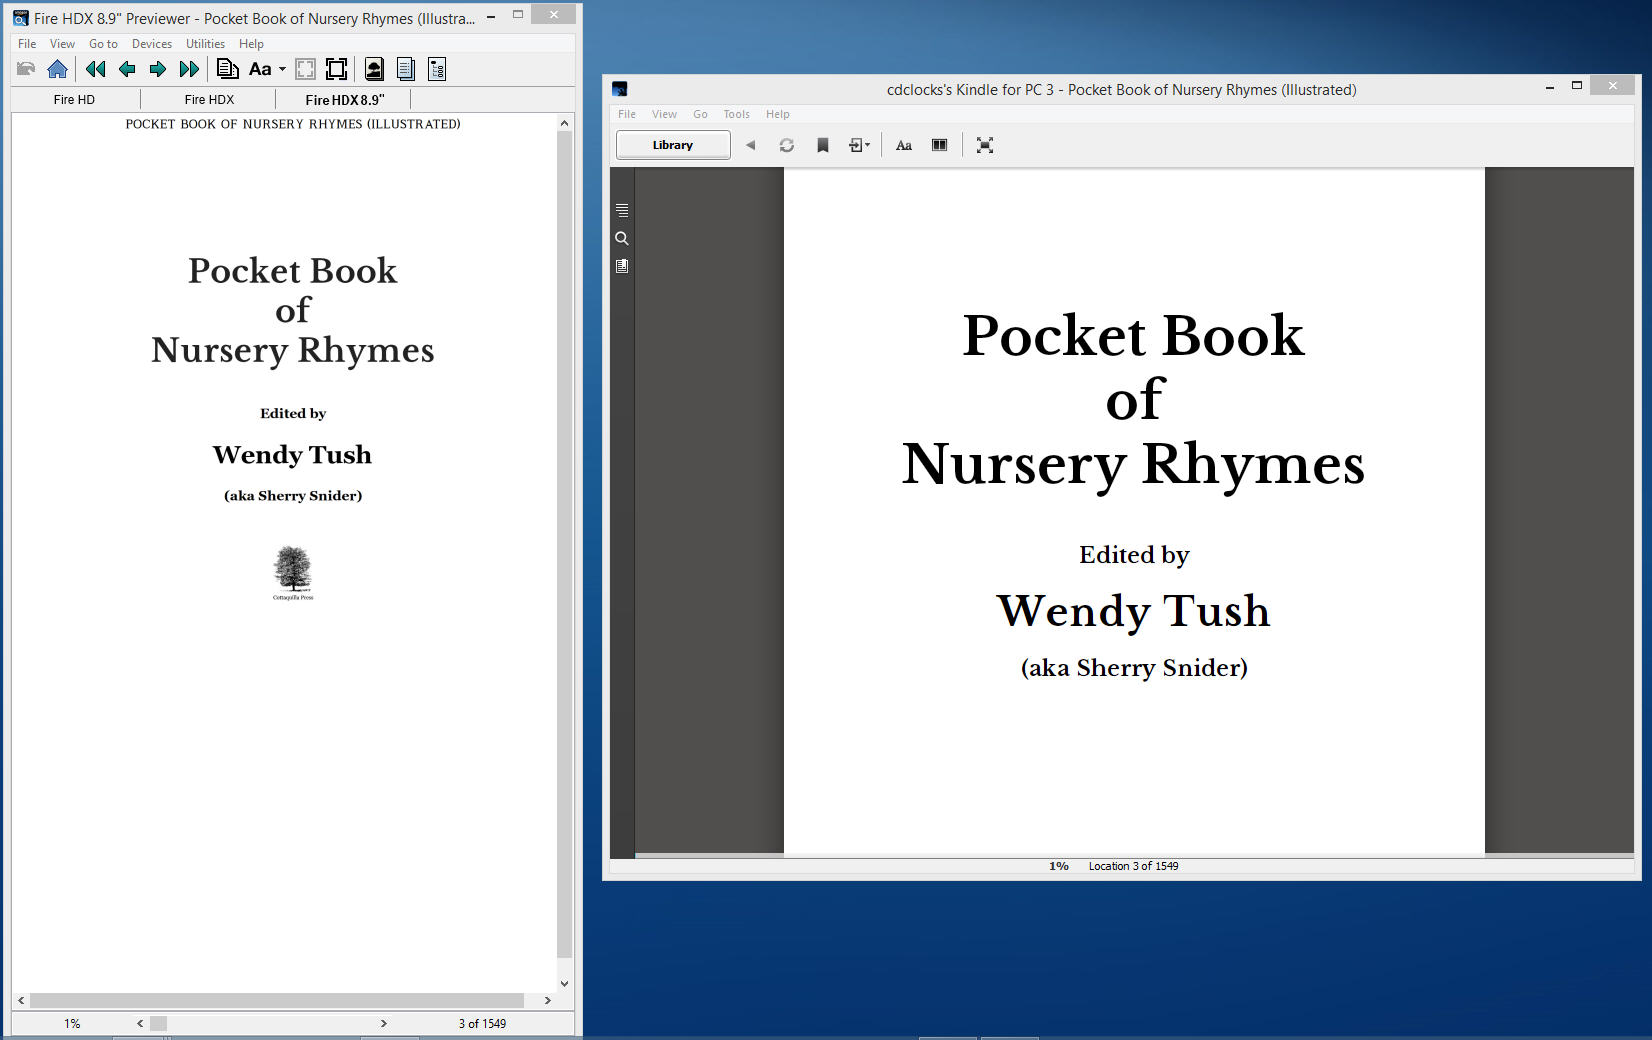 9 See mobi in Kindle Previewer and in Kindle for PC app